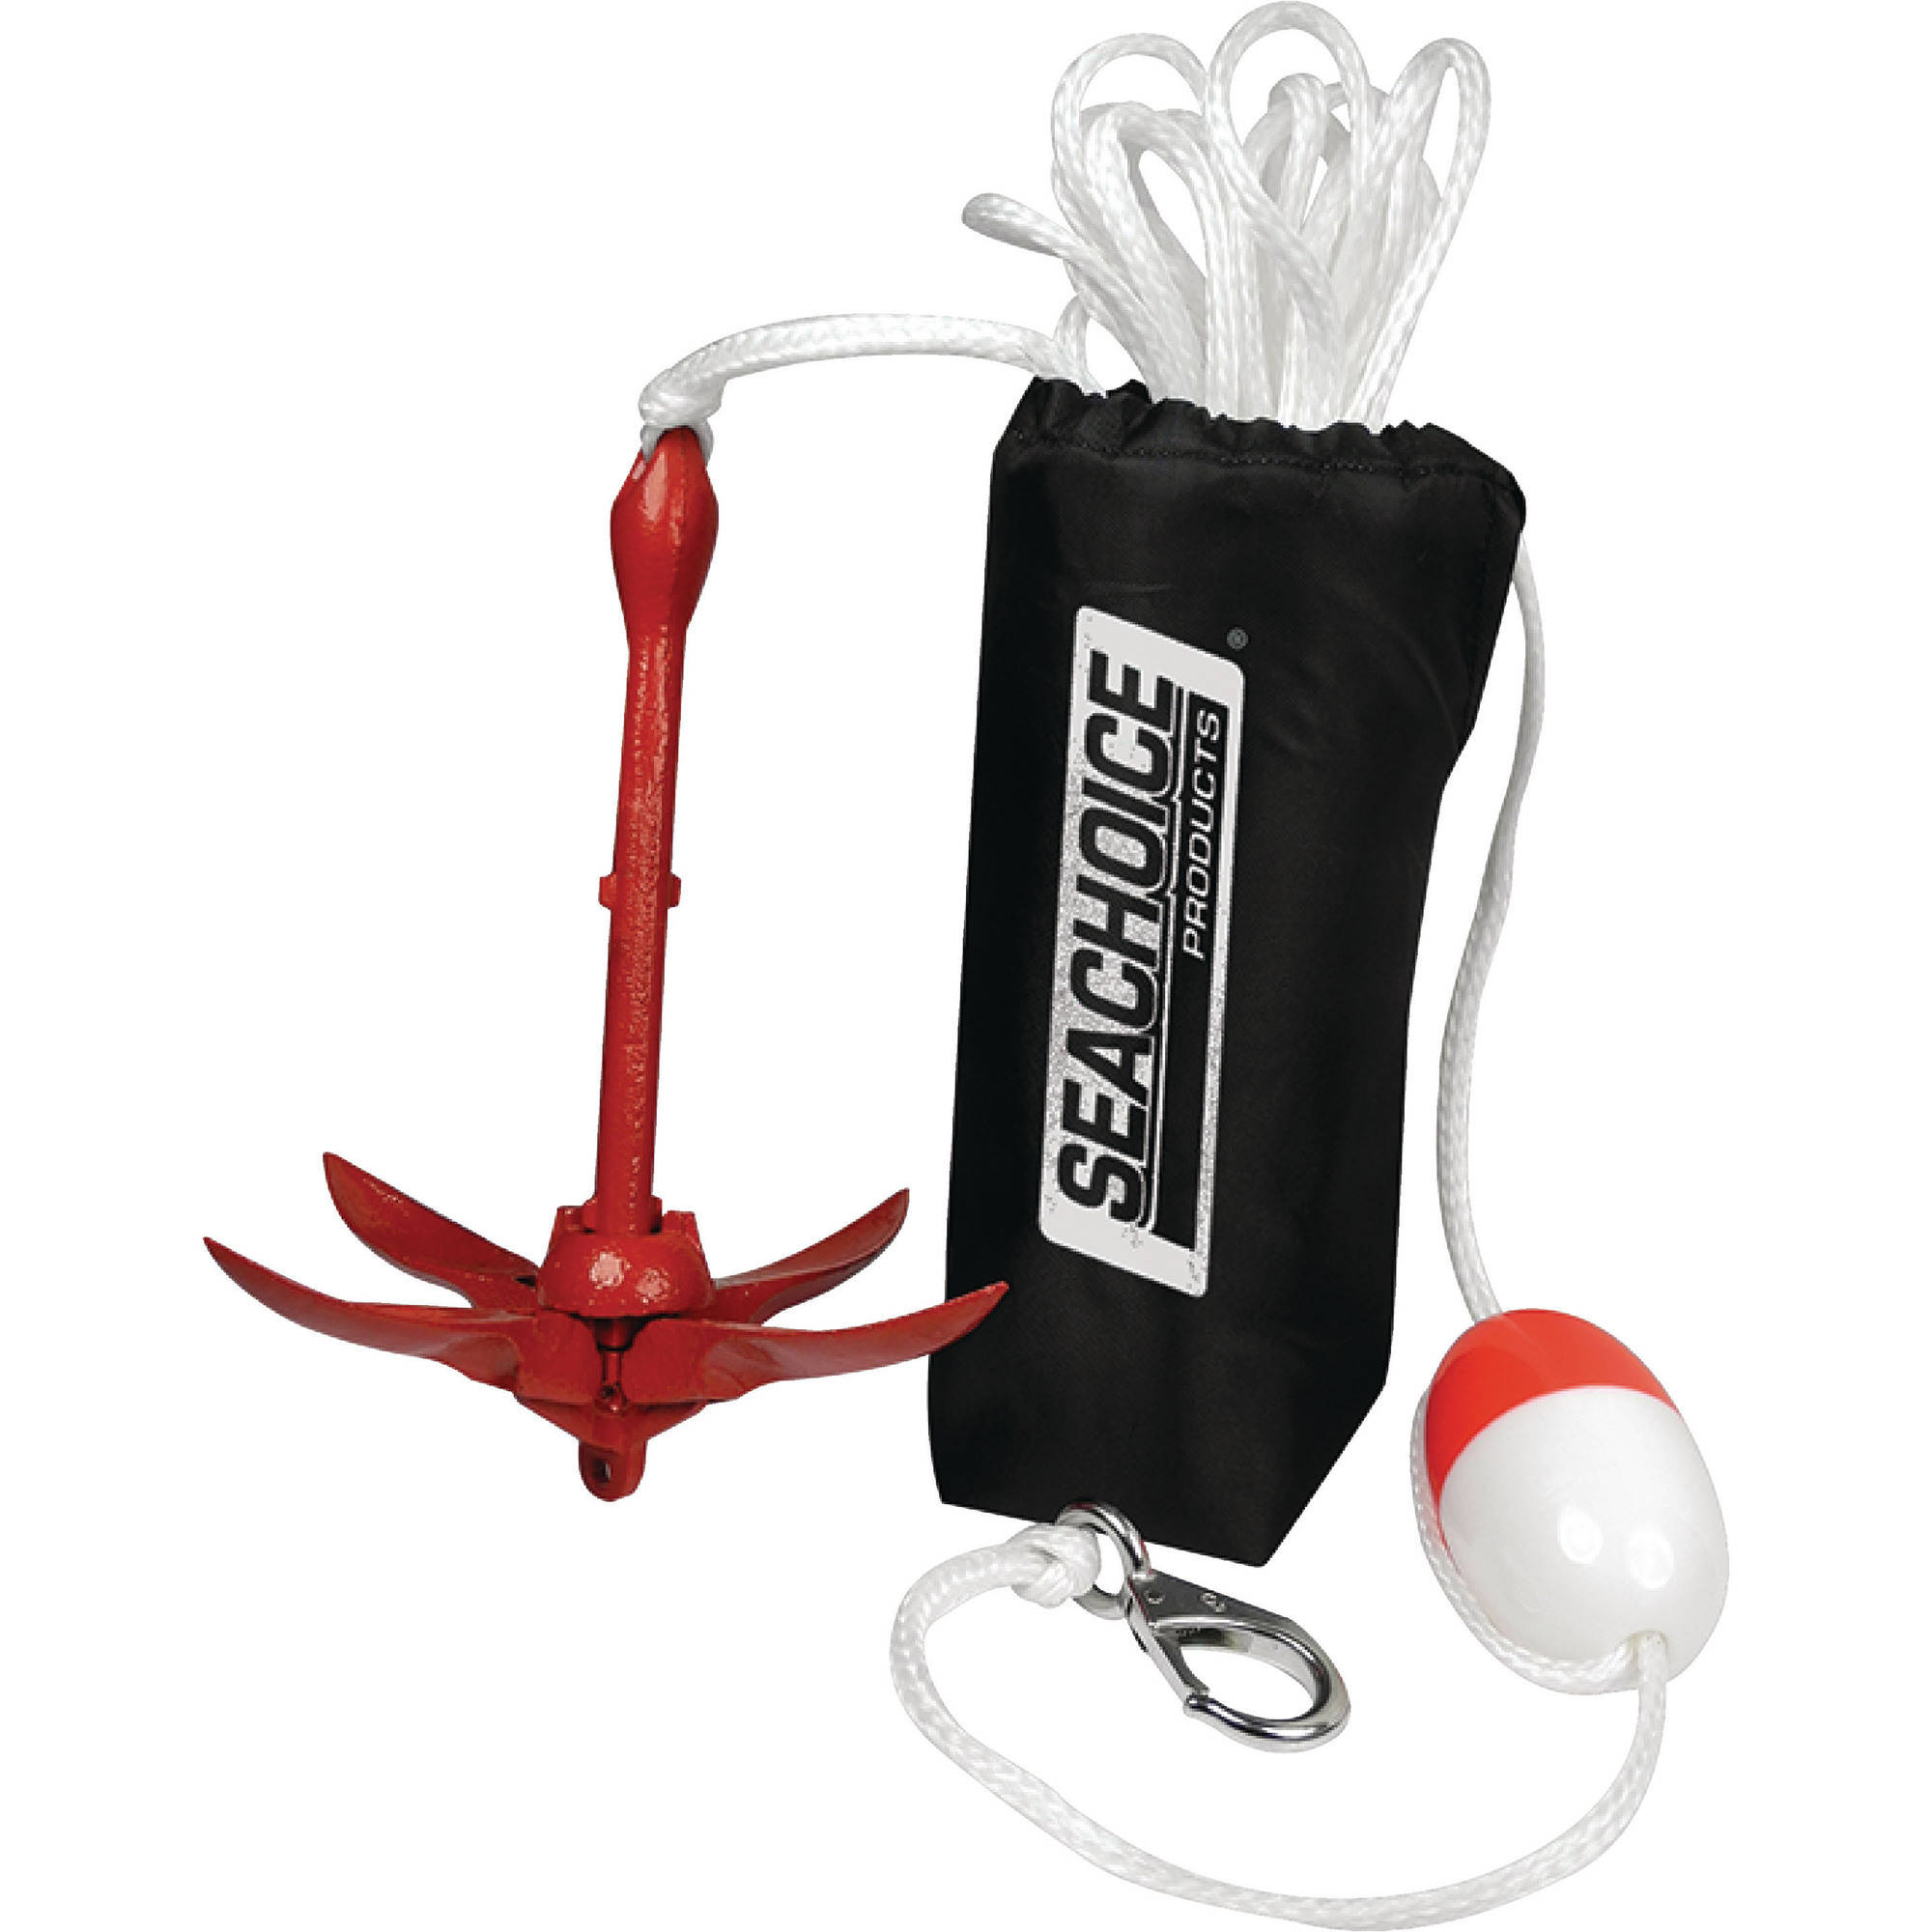 """Seachoice 3.5 lb. Grapnel Anchor Kit For Boats 5 to 12' (Includes Anchor, 1/4"""" x 25' Line, Adjustable Buoy, S/S Hook and Storage Bag)"""